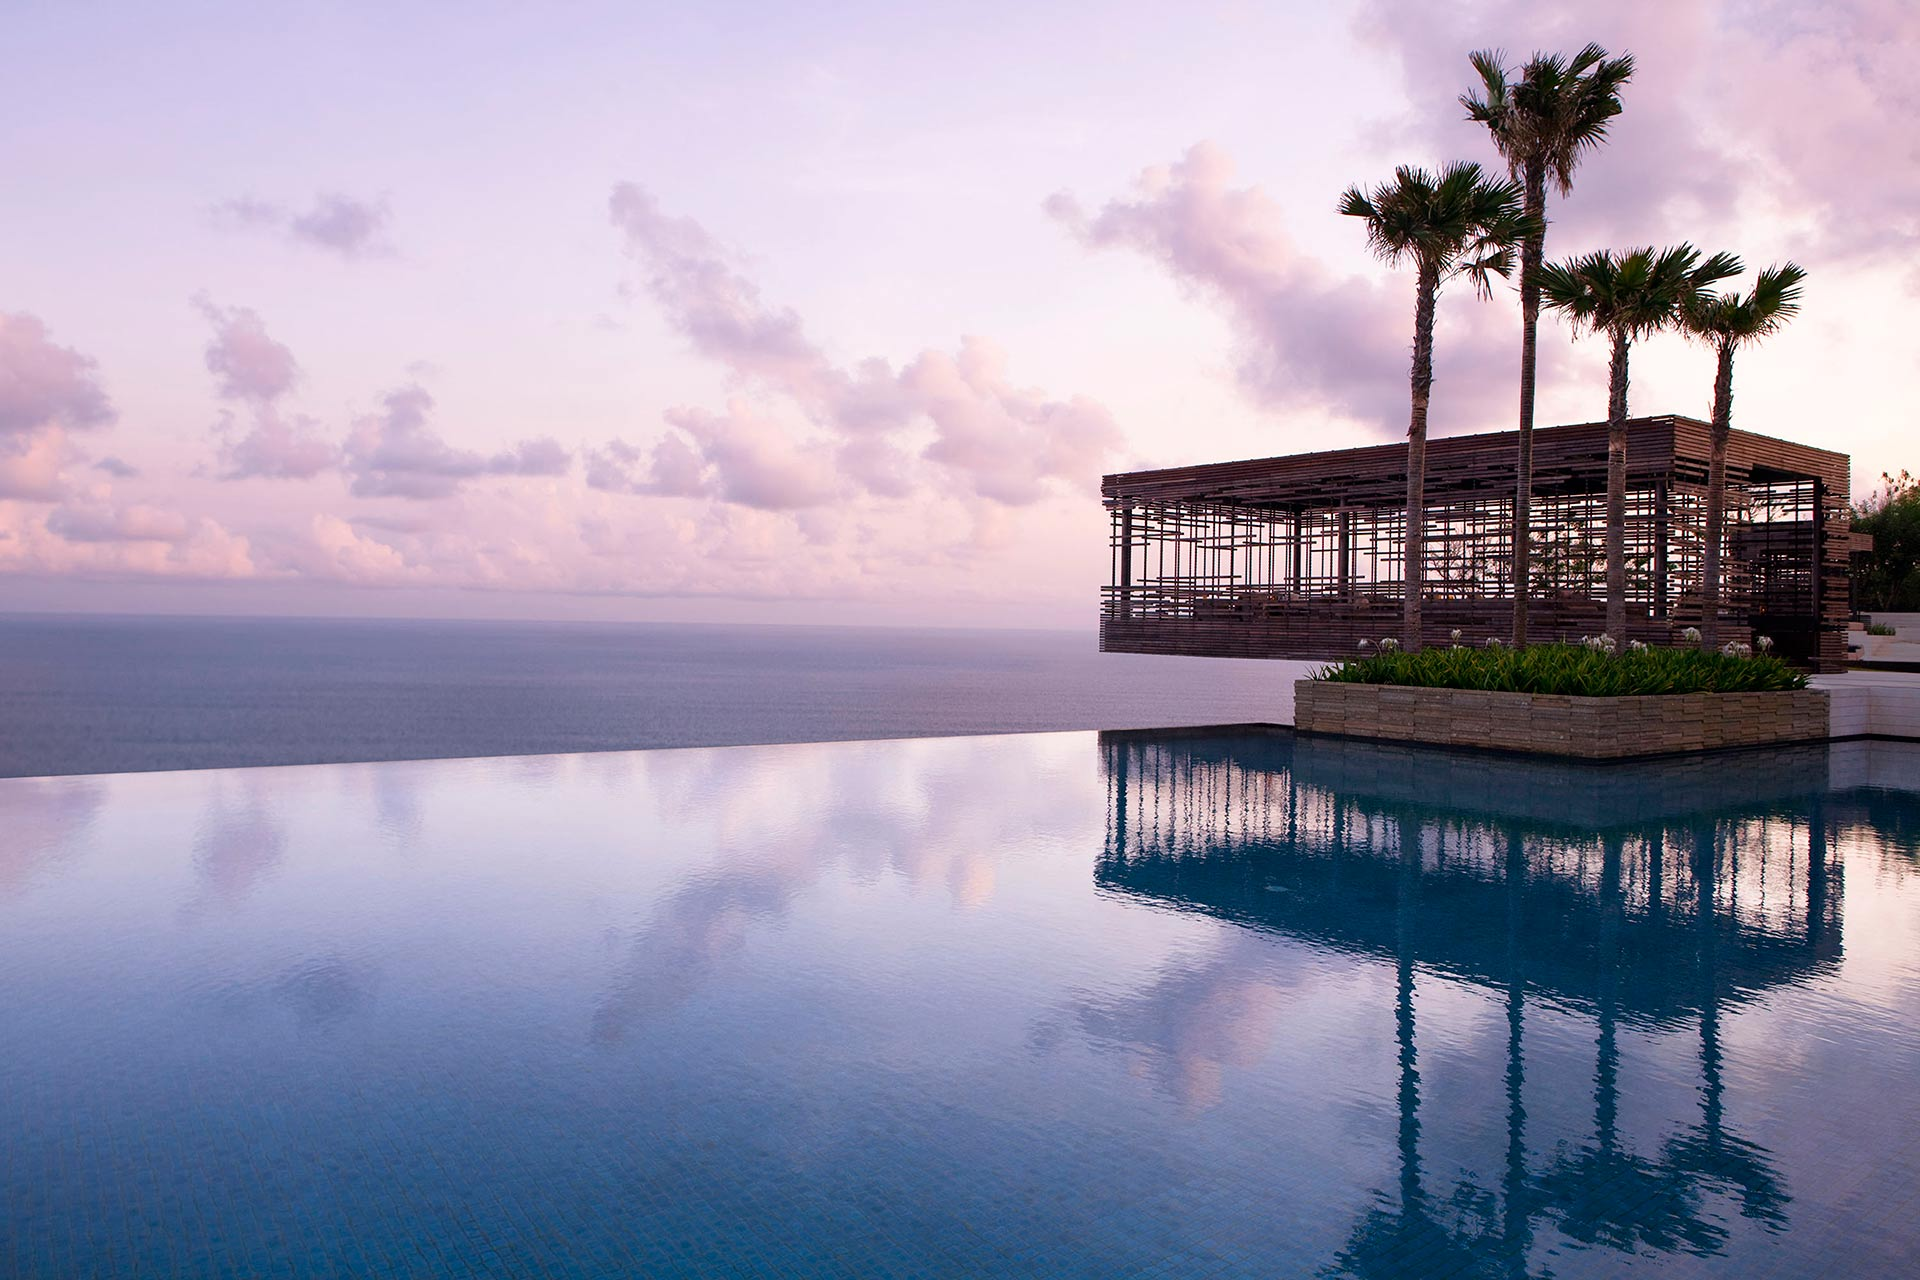 Bali Luxury Villas 5 Star Bali Resorts Alila Villas Uluwatu